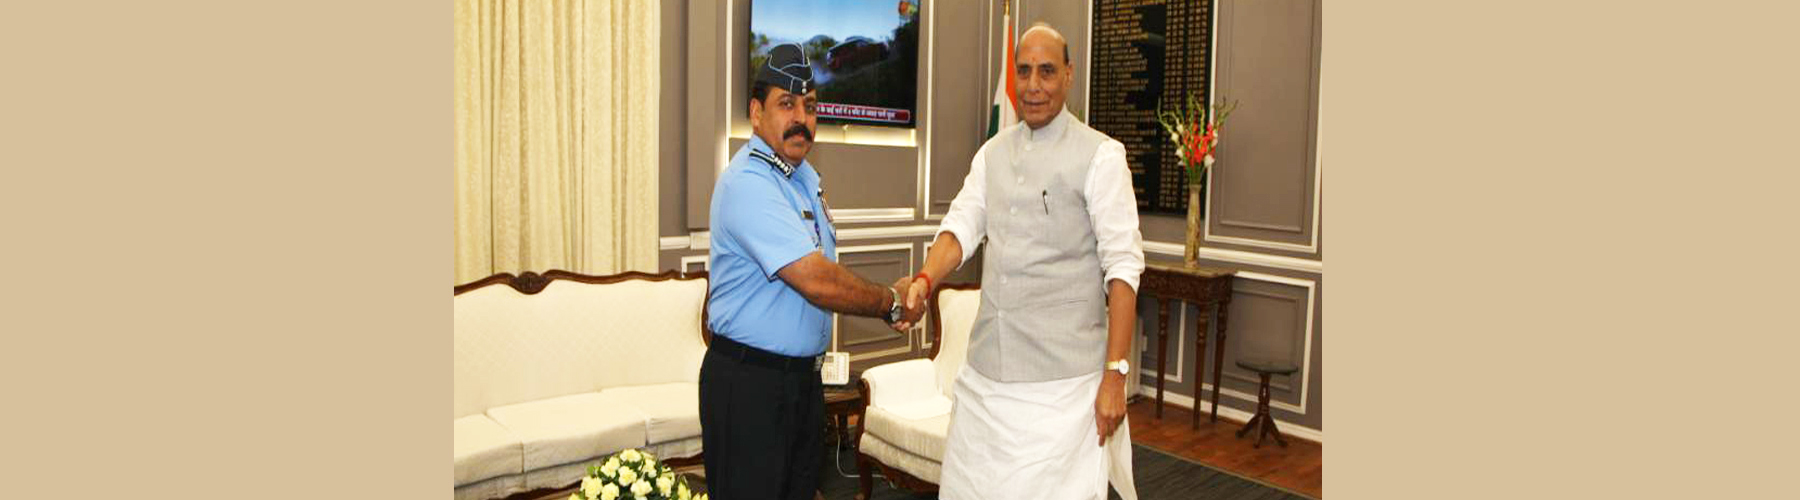 Air Chief Marshal Rakesh Kumar Singh Bhadauria calling on Raksha Mantri Shri Rajnath Singh after taking charge as the Chief of the Air and Staff in New Delhi on September 30, 2019.